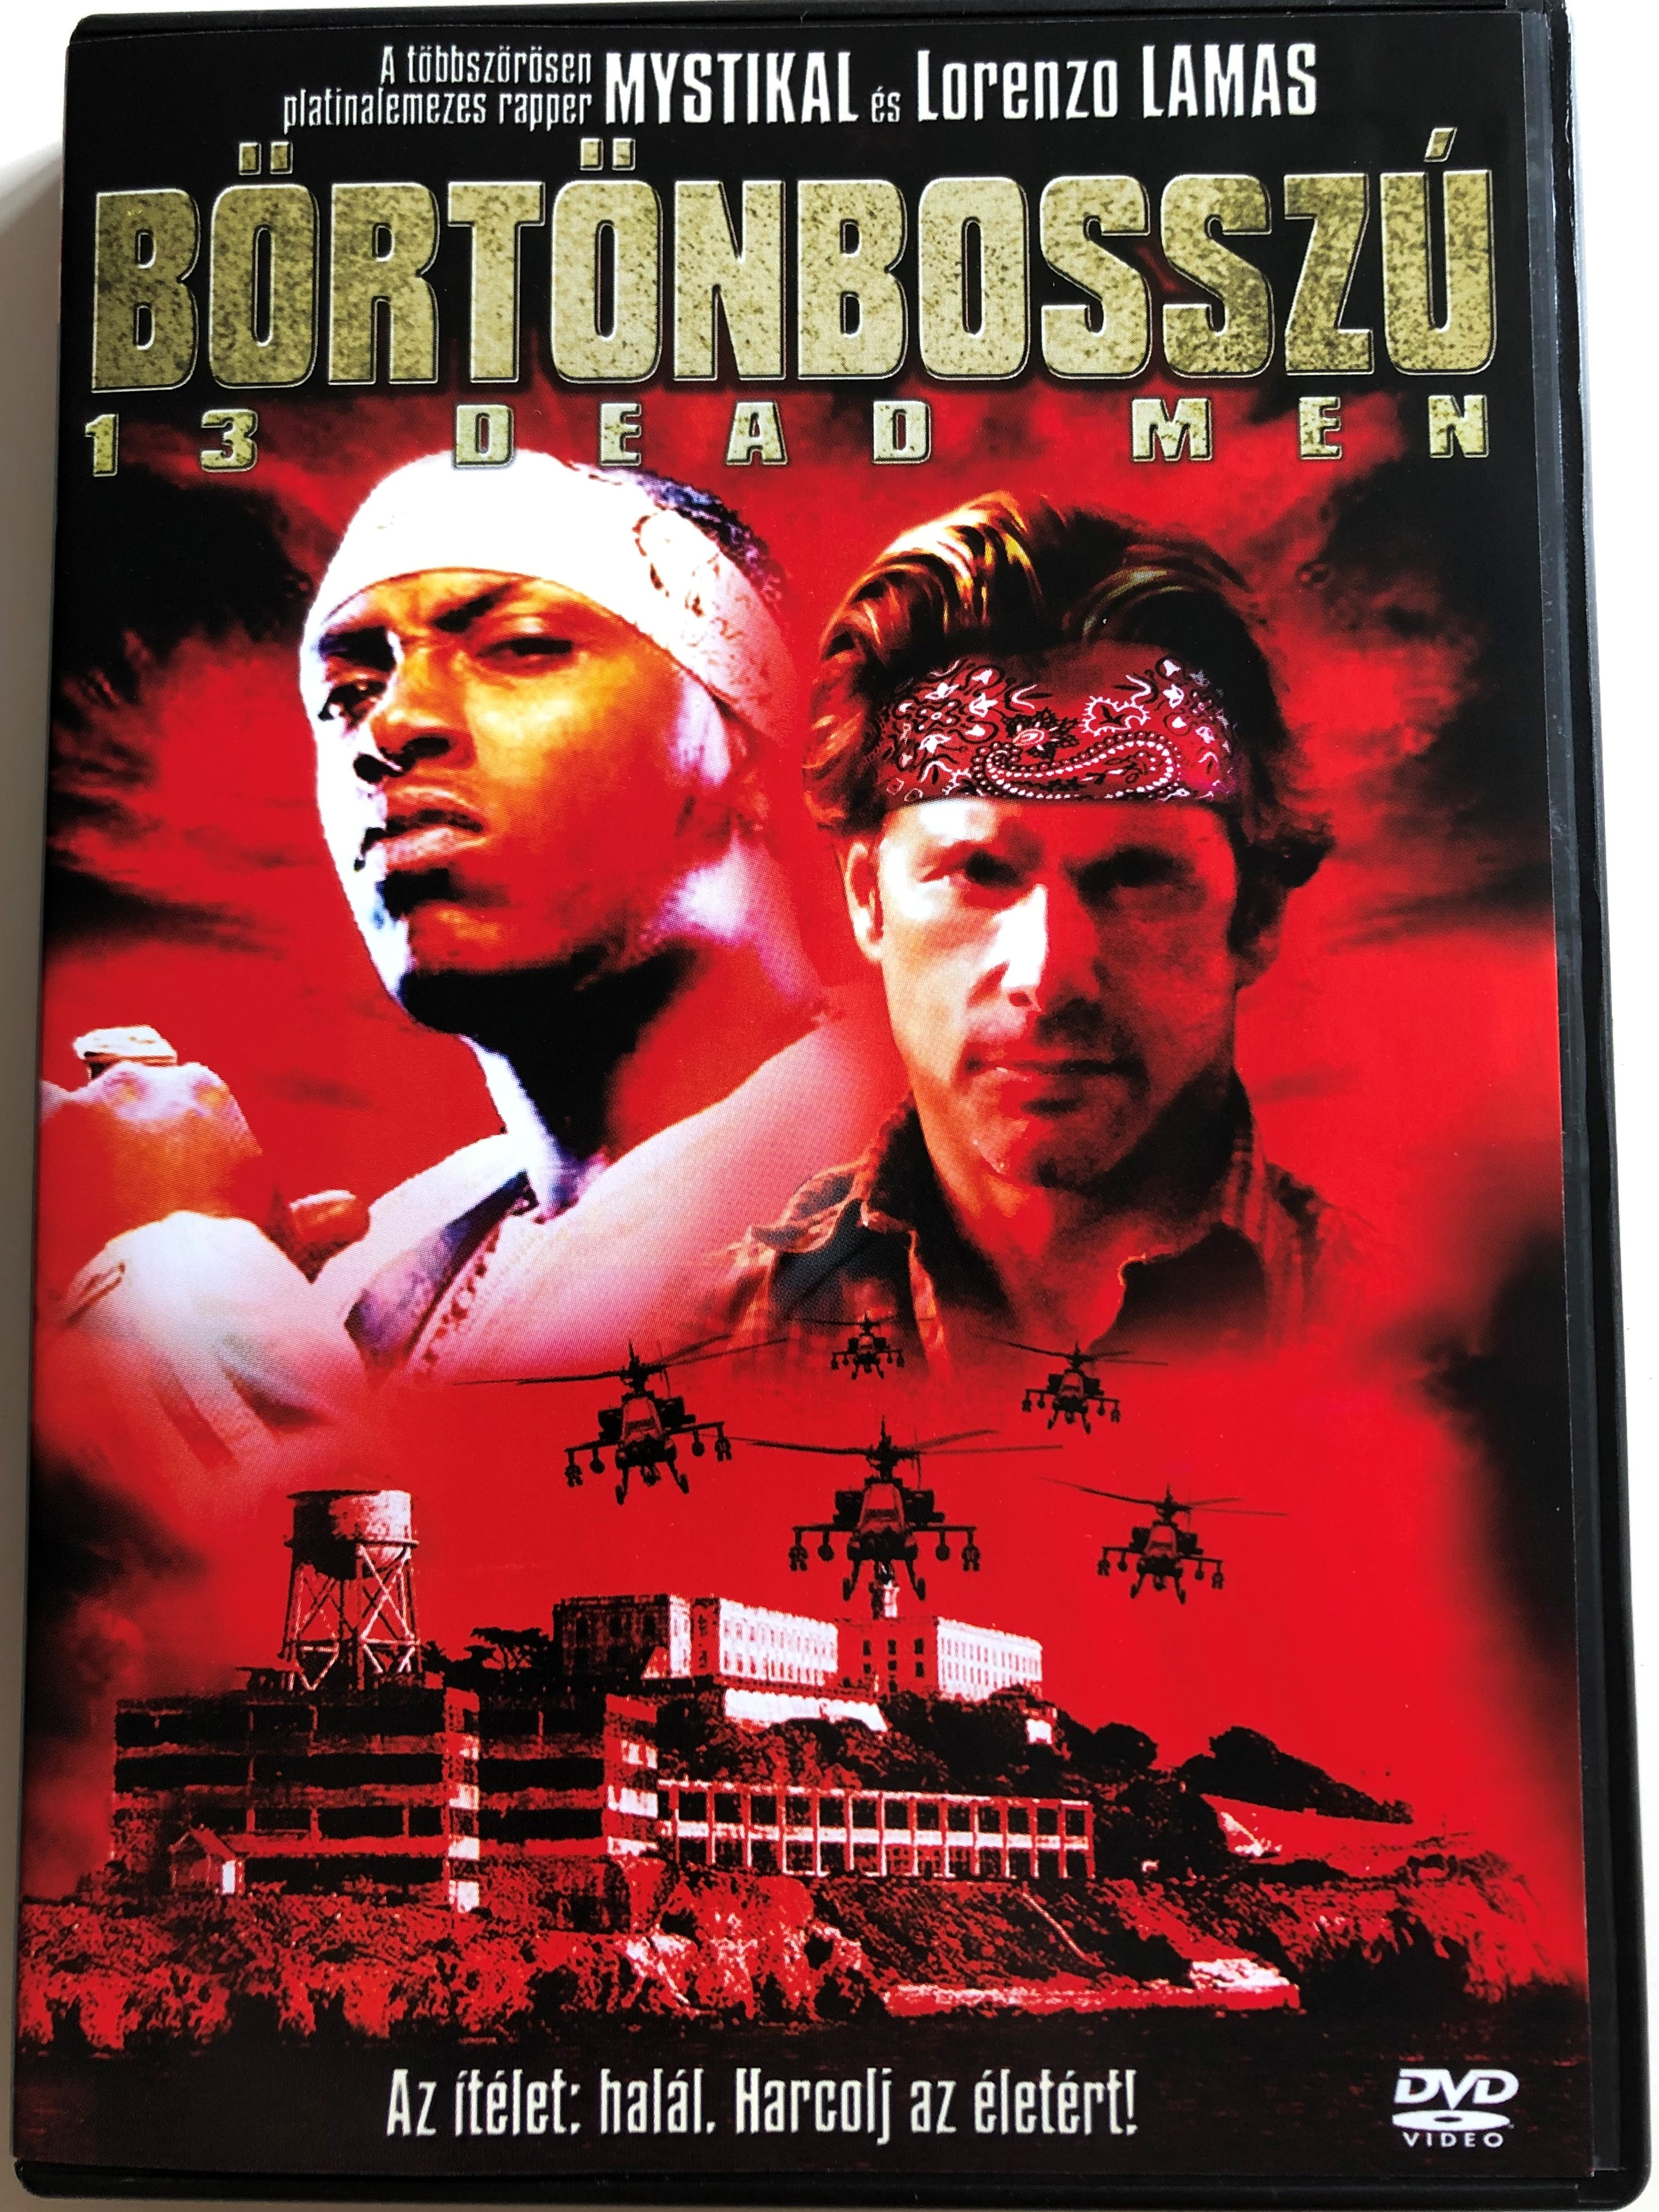 13-dead-men-dvd-2003-b-rt-nbossz-directed-by-art-camacho-starring-mystikal-lorenzo-lamas-1-.jpg